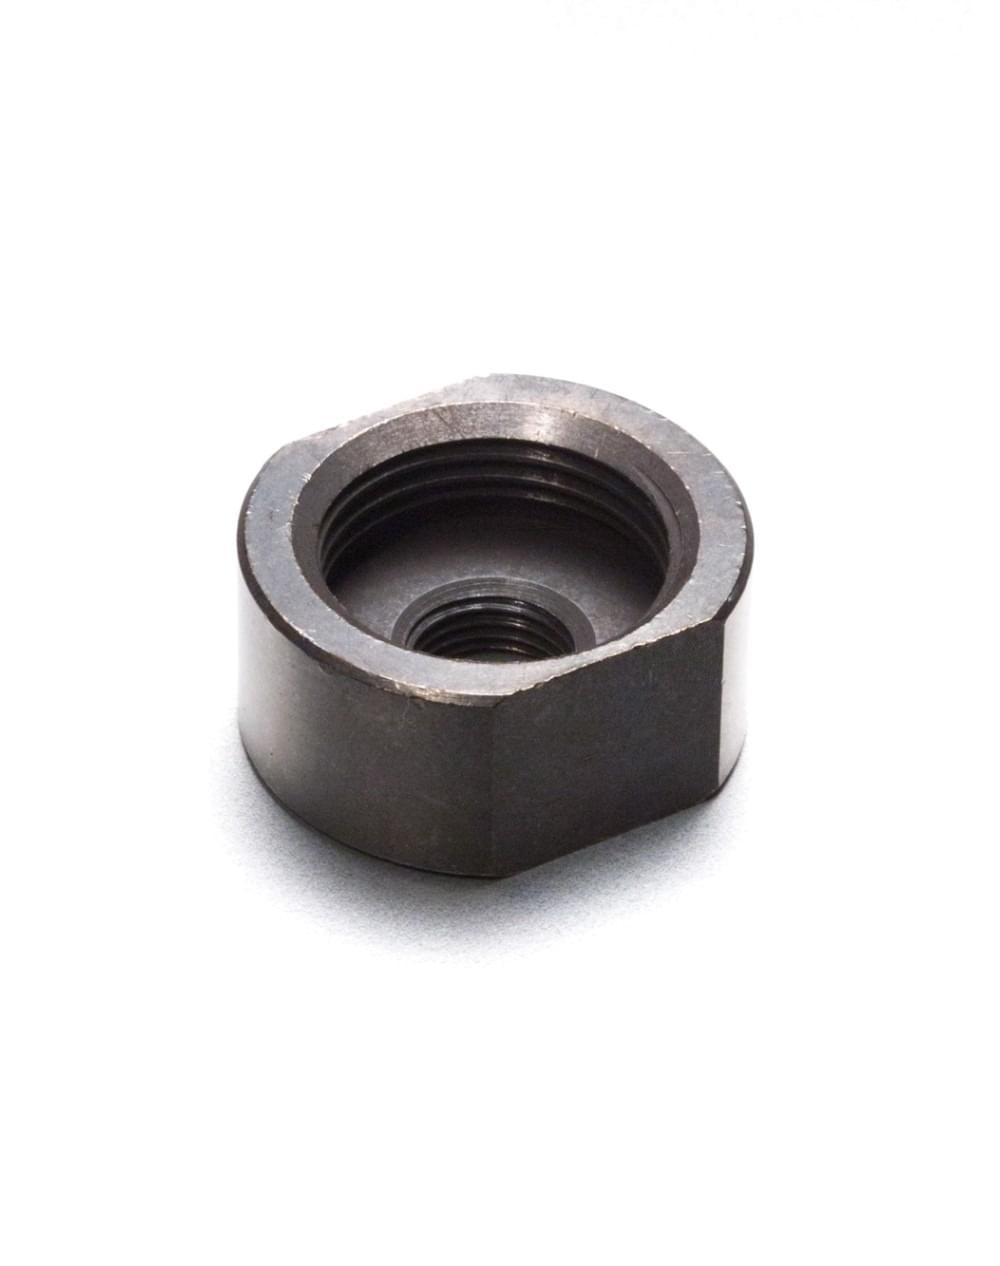 Factorylux Conduit Reducer Coupling Nut 20mm To 10mm